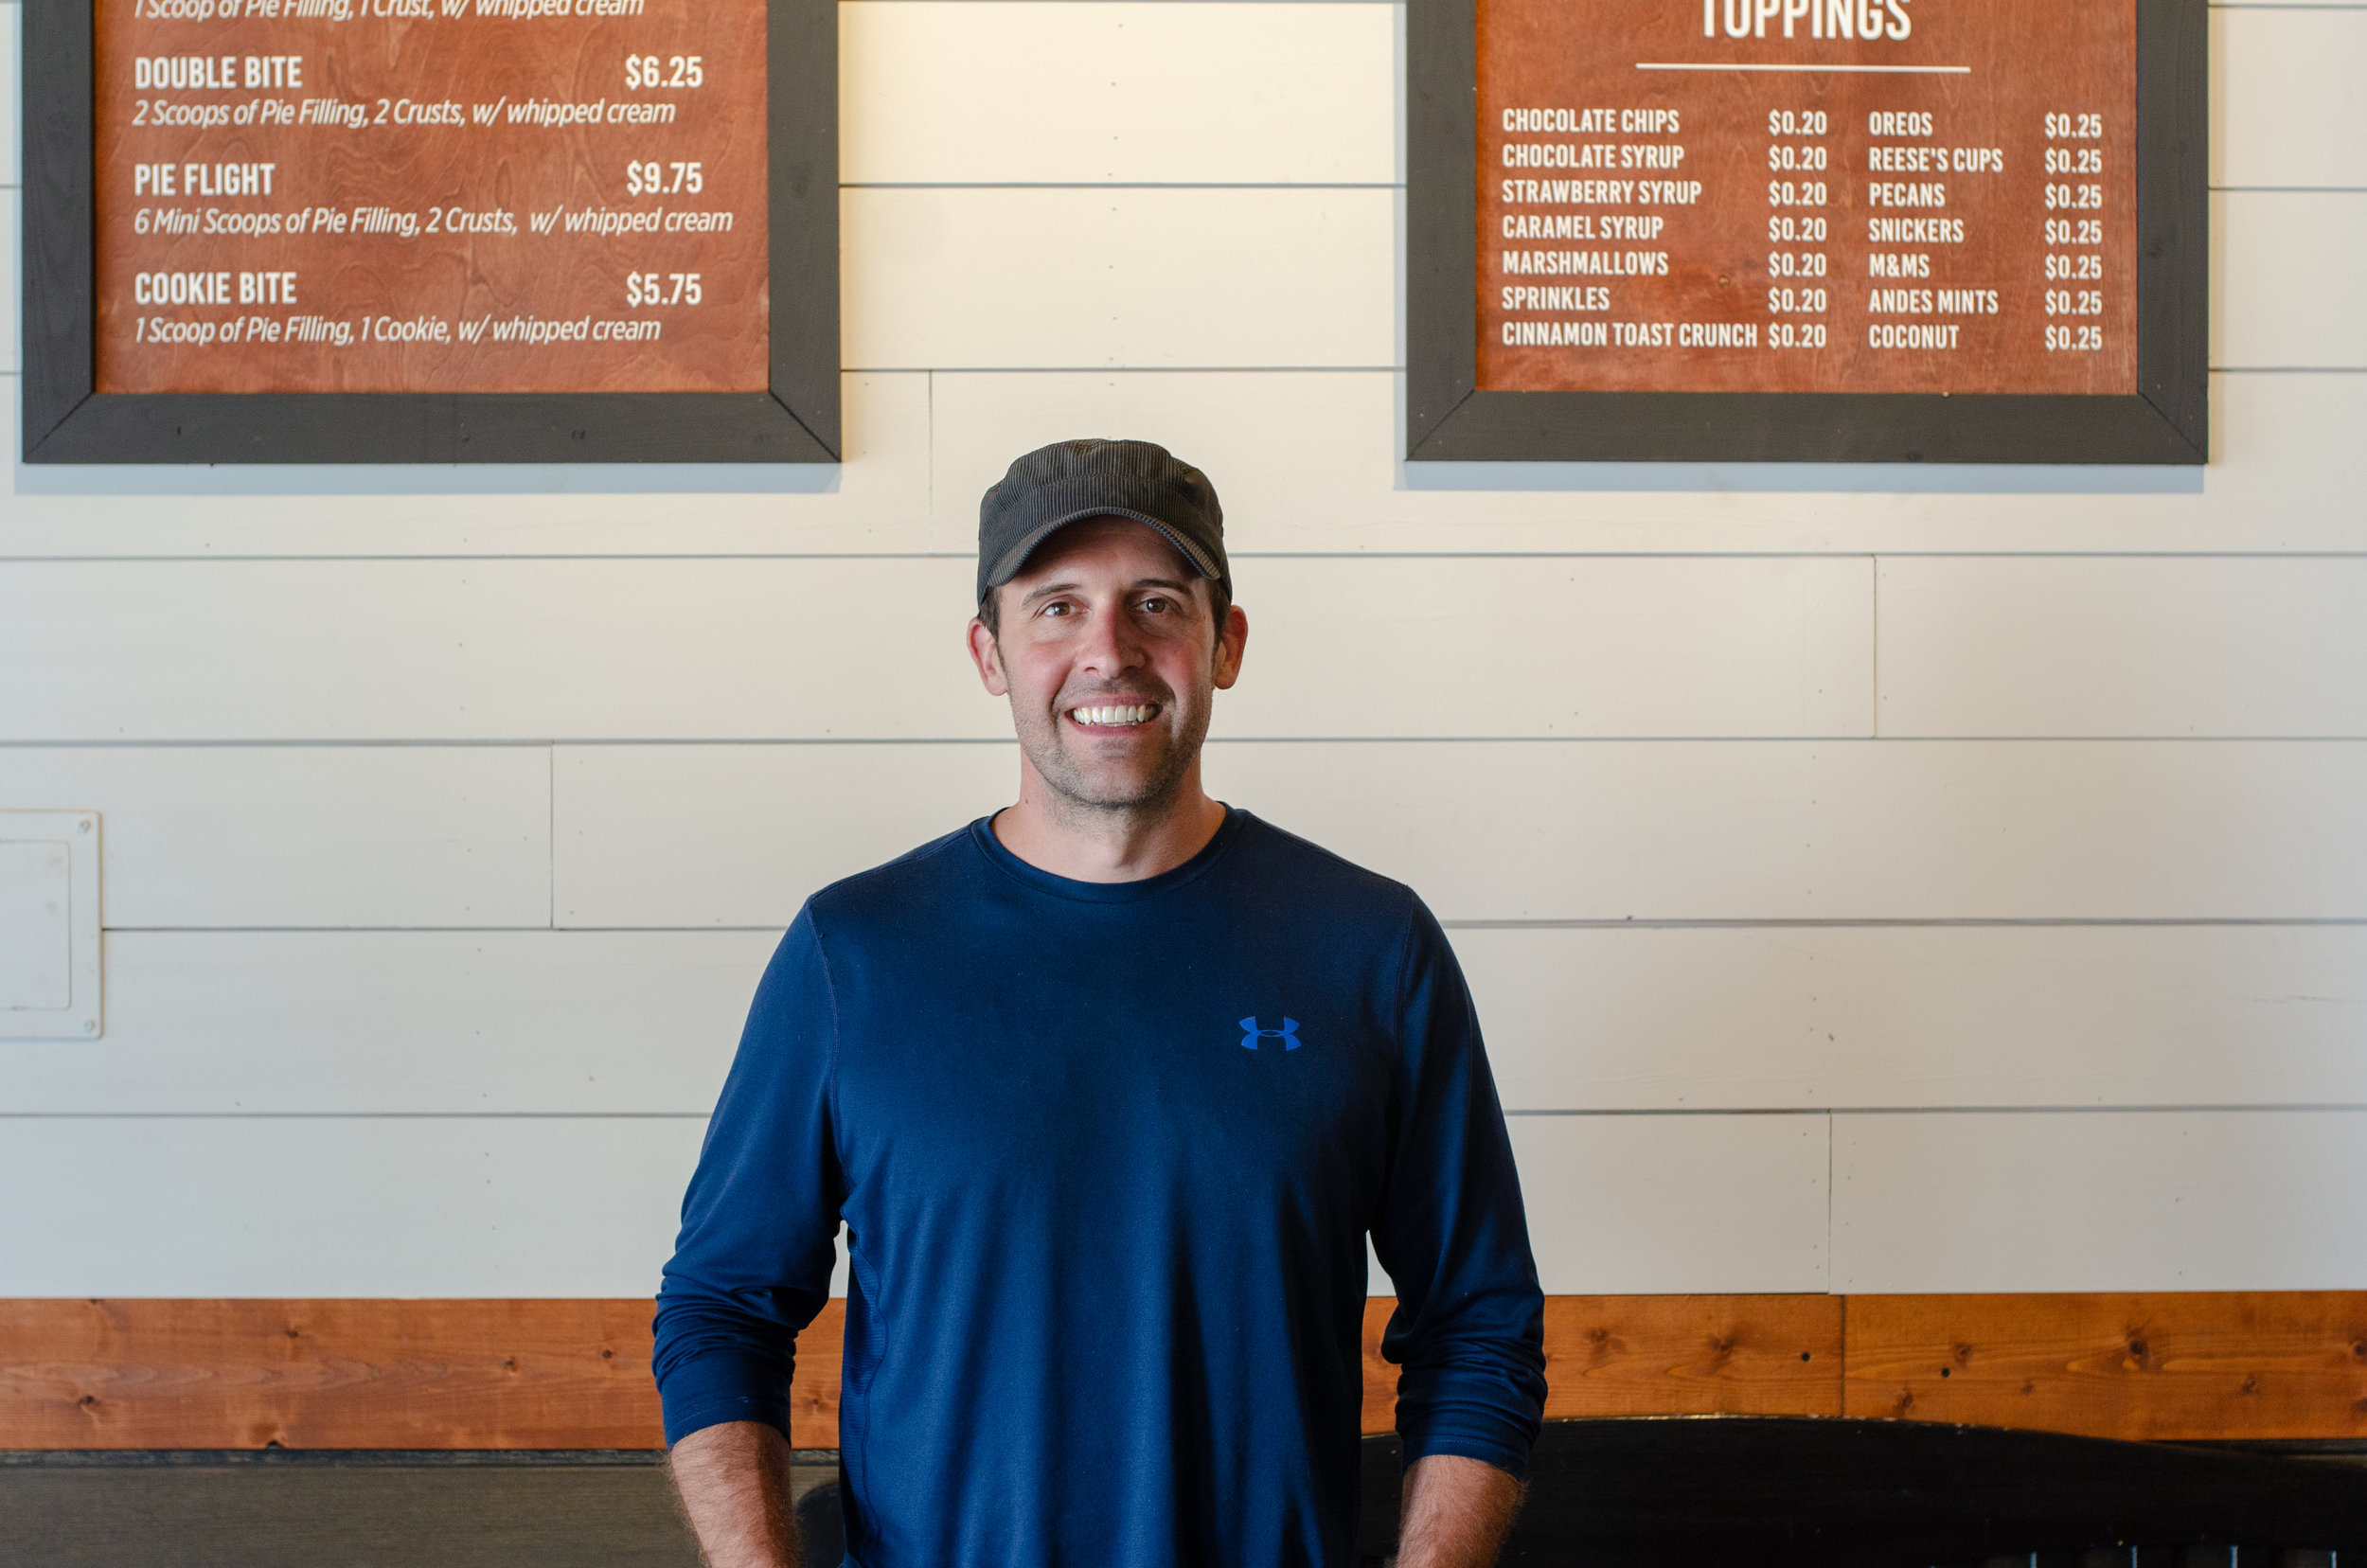 What local and independent means to Carson - Being able to partner with other local businesses by carrying Gold Stripe Coffee, supporting Texas Tech and LCU, and taking care of our customers to make sure they have the best experience possible!